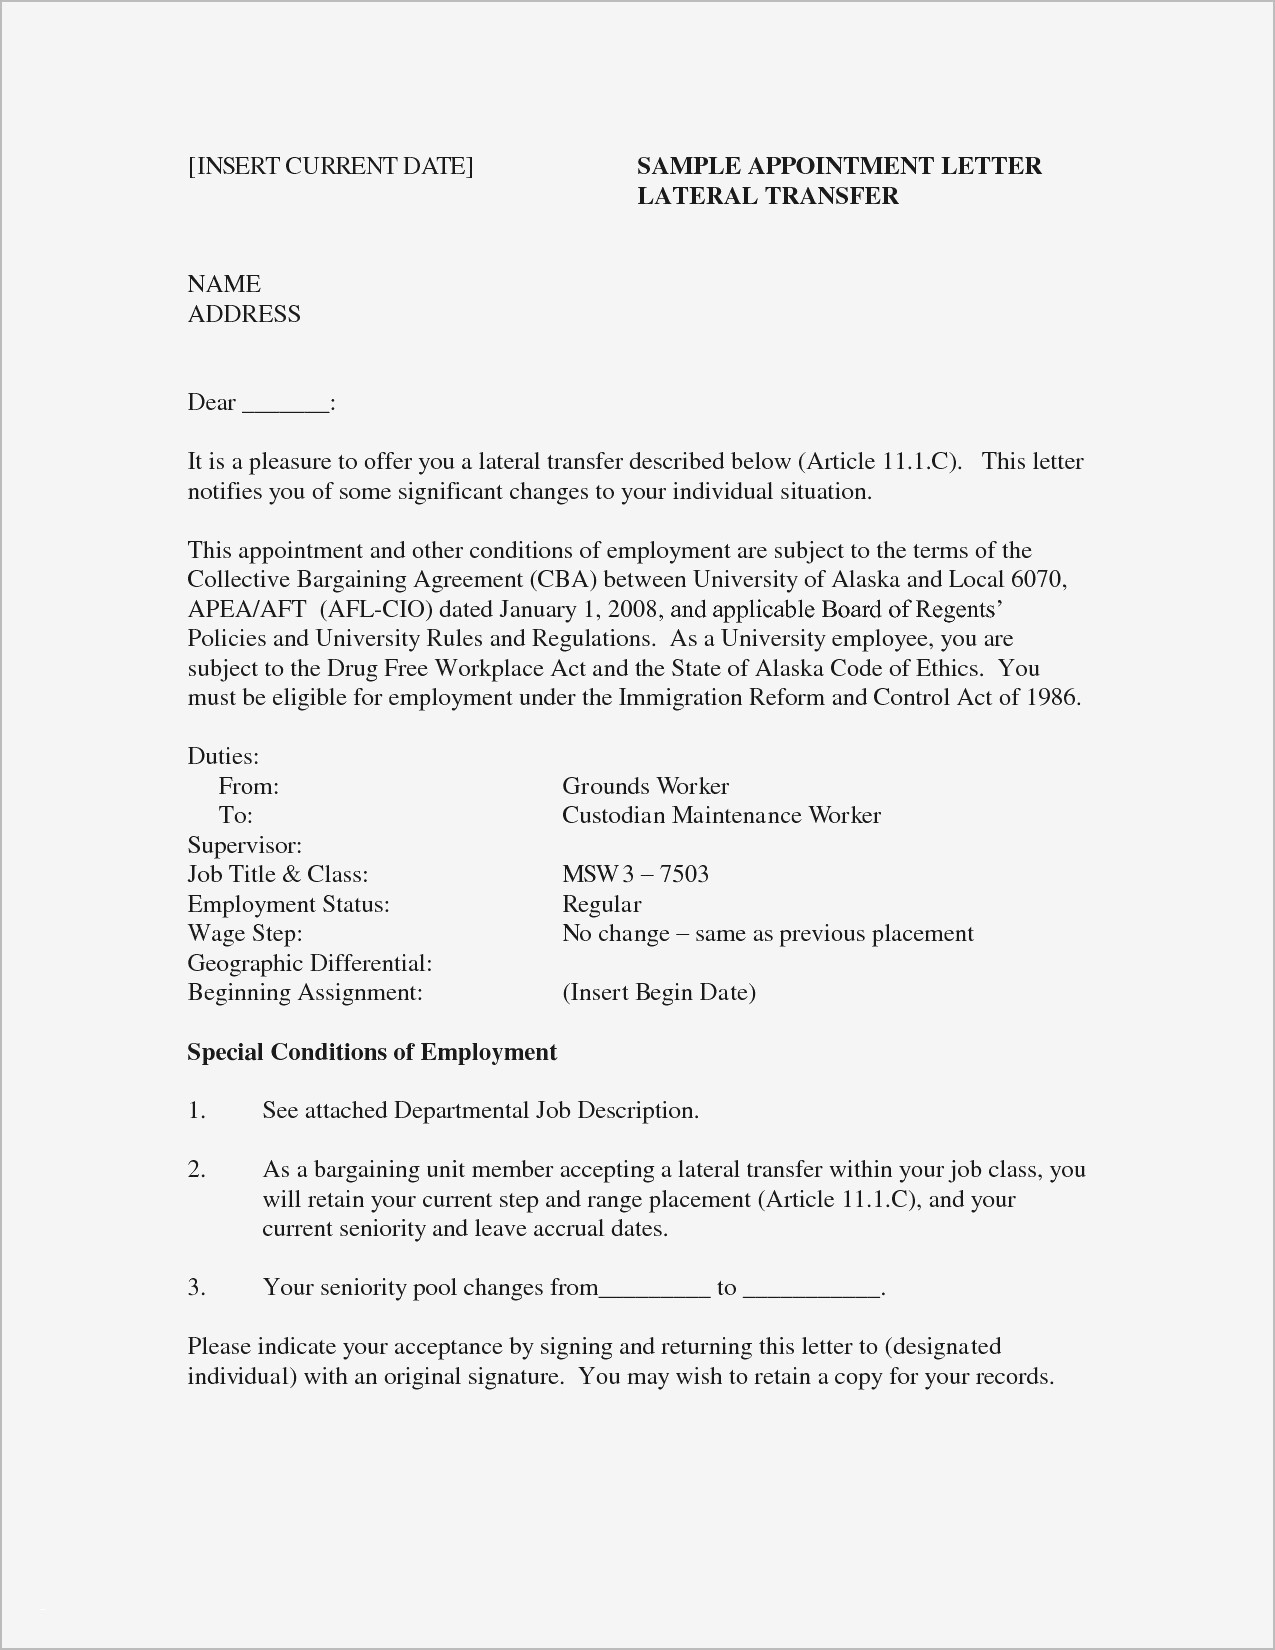 Professional Summary No Experience - Substitute Teacher Resume Objective